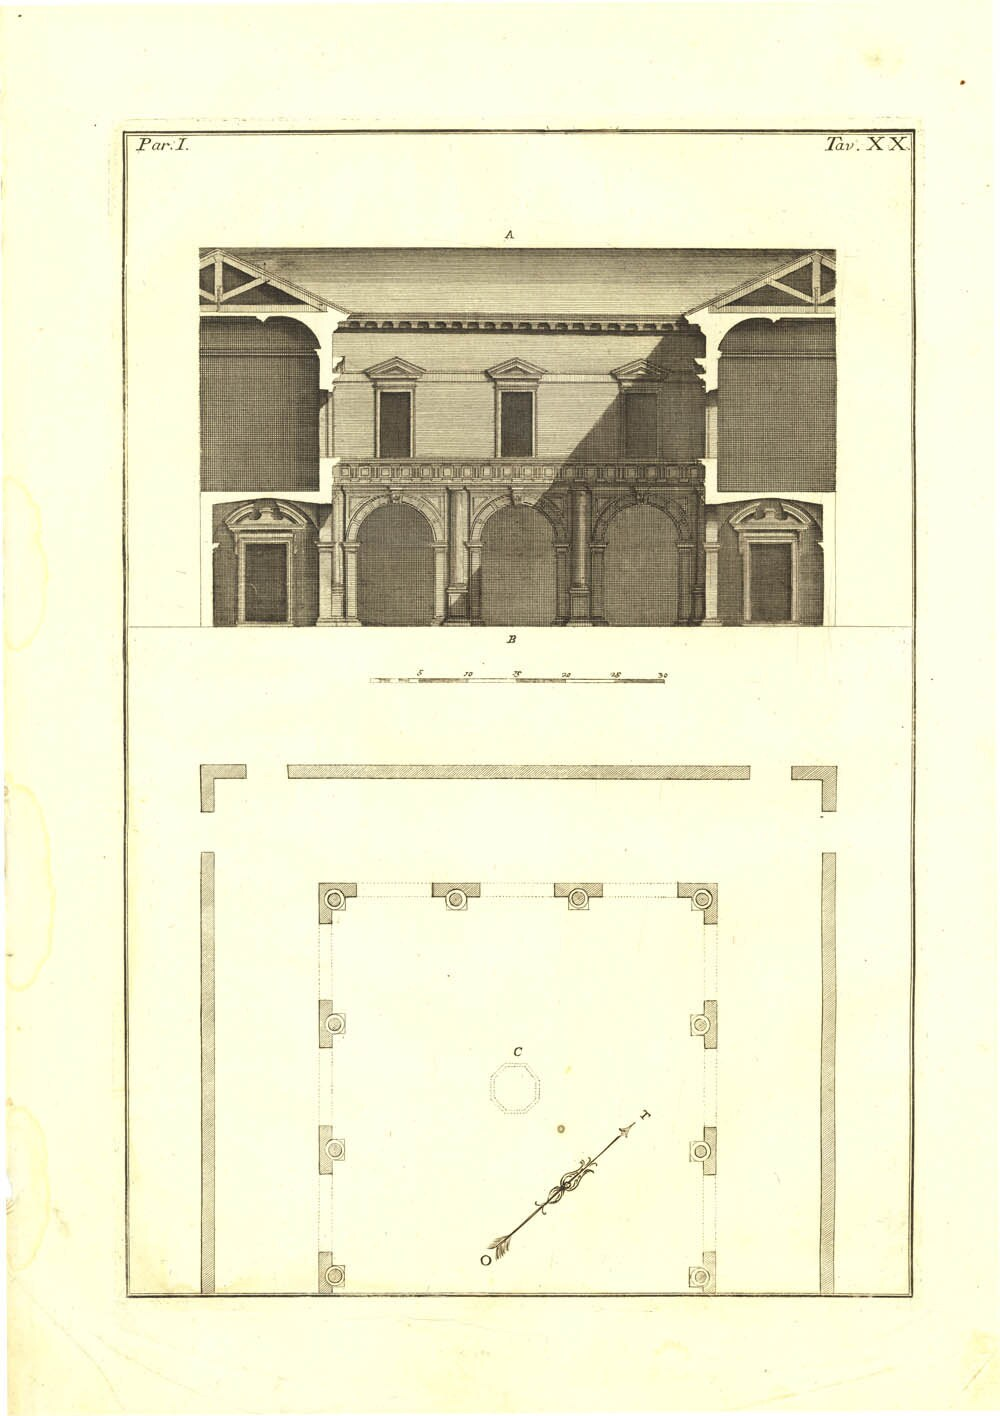 1760 Palladio Architectural Print Palazzo del Bo Floor Plan and Cross Section